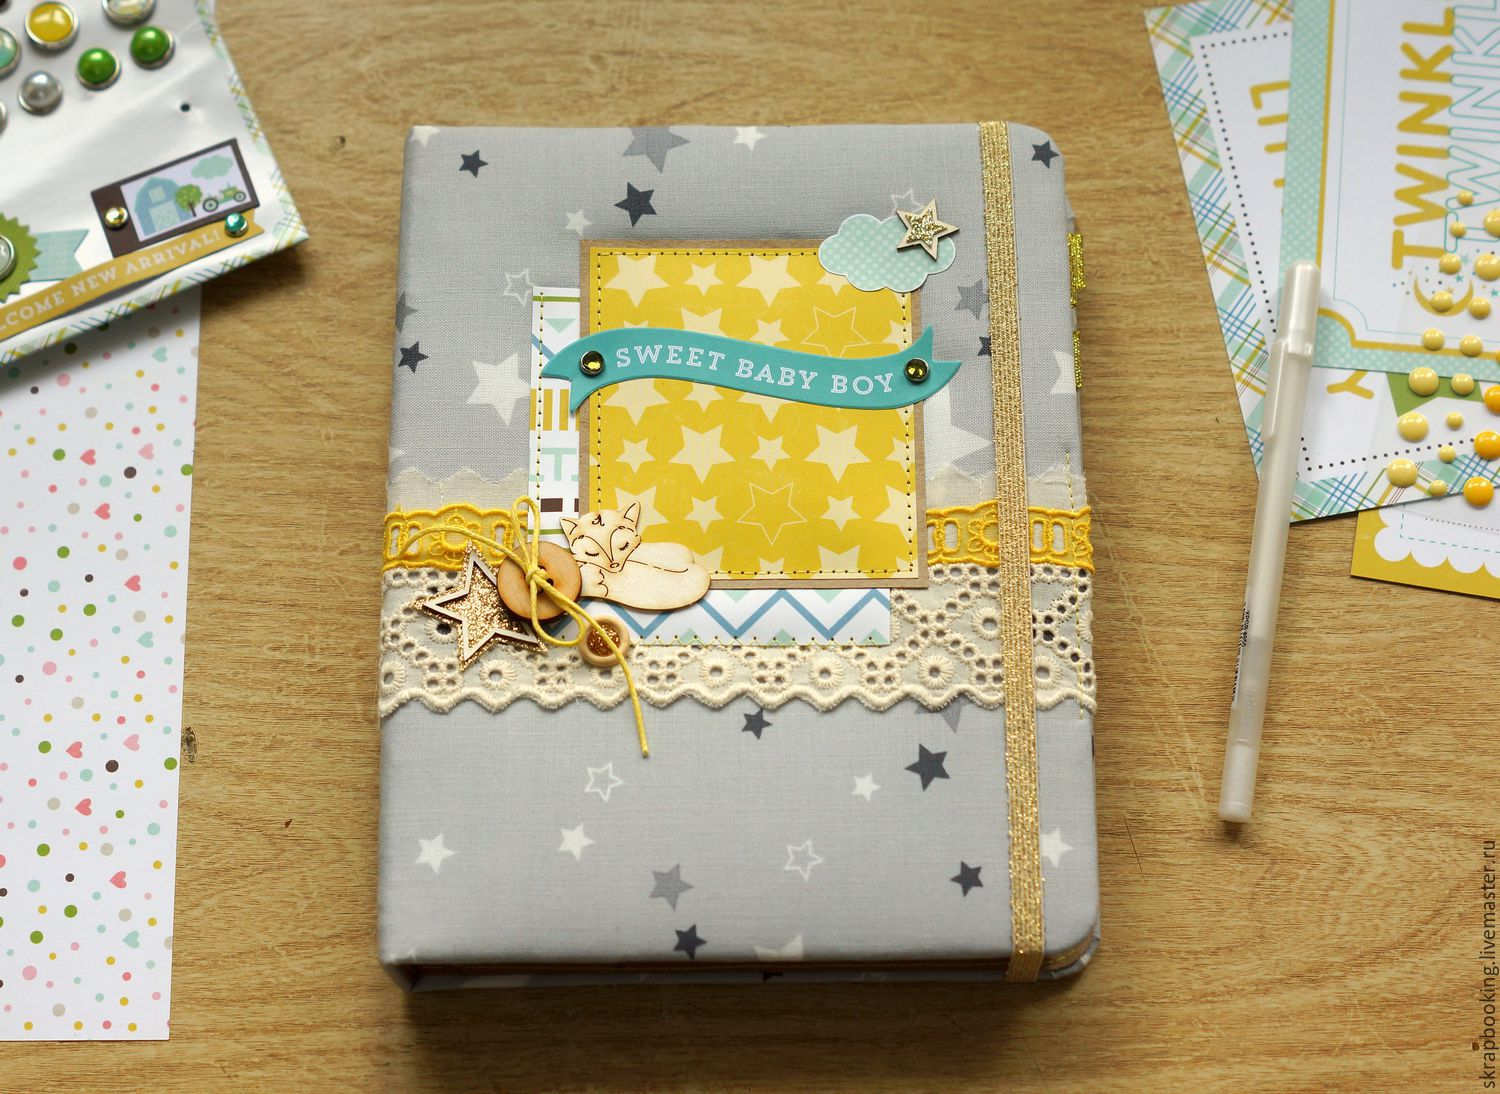 Star mother's diary for a boy, Scrapbooking Workshop Living History